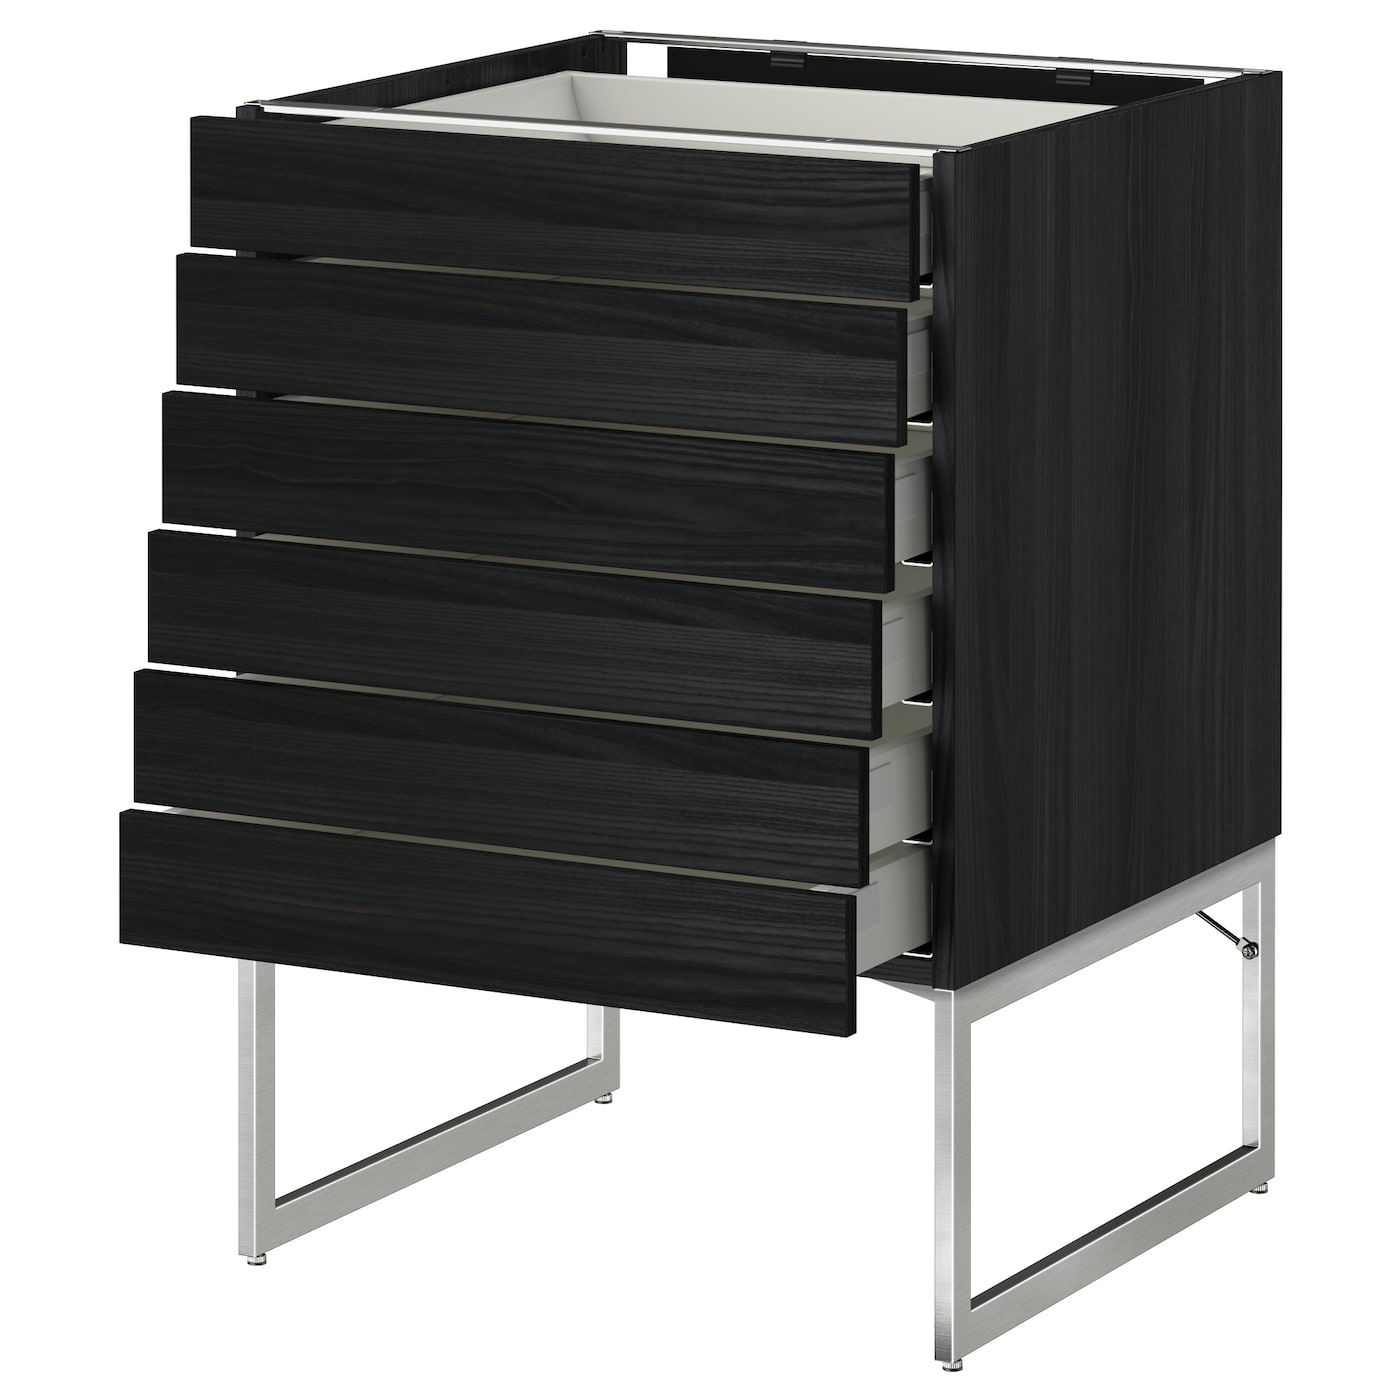 Ikea Kitchen Black Cabinets: METOD/MAXIMERA Base Cabinet 6 Fronts/6 Low Drawers Black